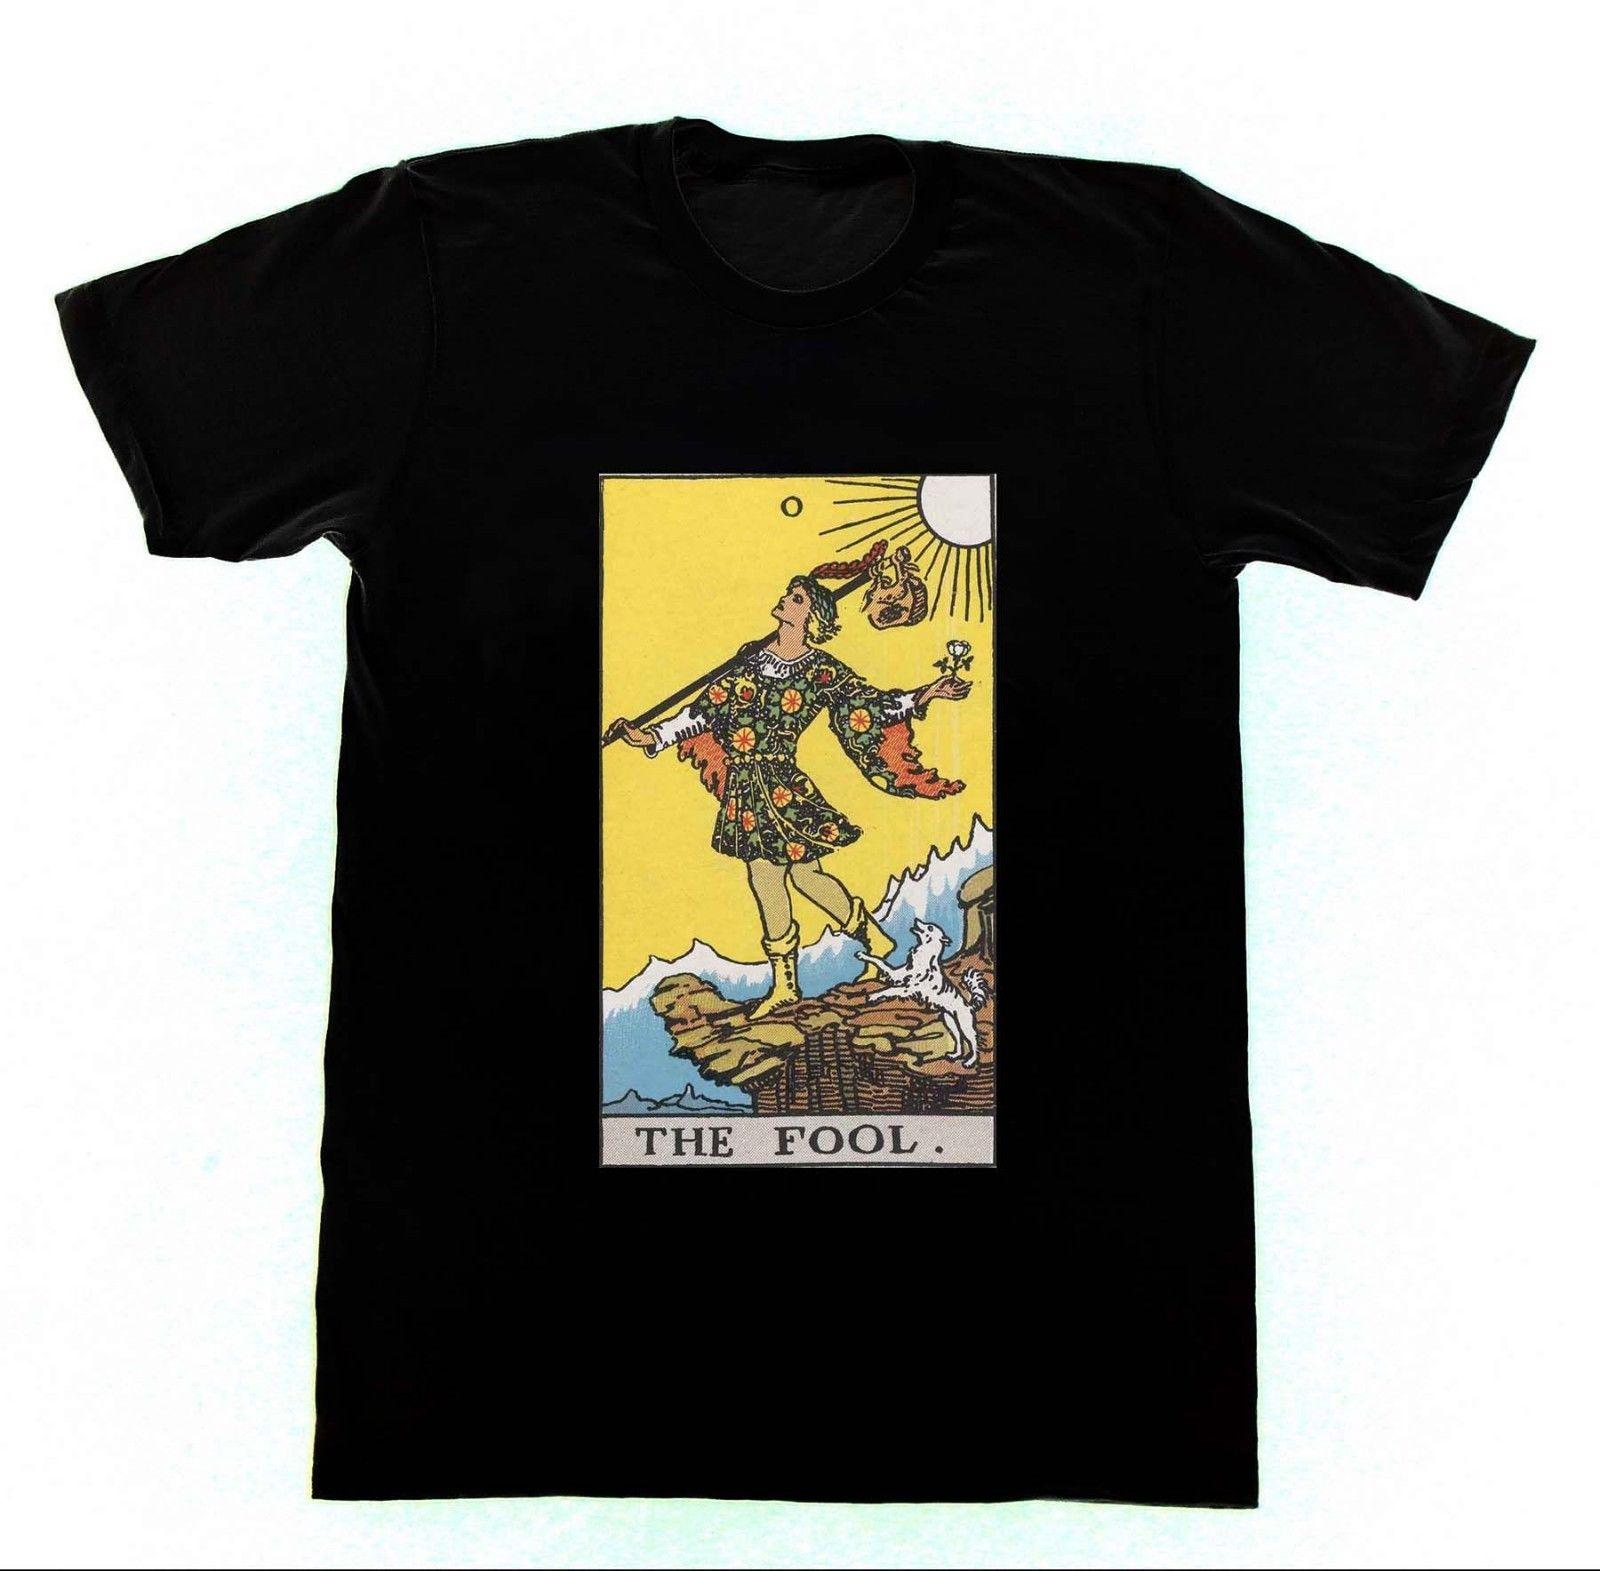 The Fool Shirt T7 Tshirt Ryder Tarot Card Fortune Telling Occult  WitchcraftFunny free shipping Unisex Casual